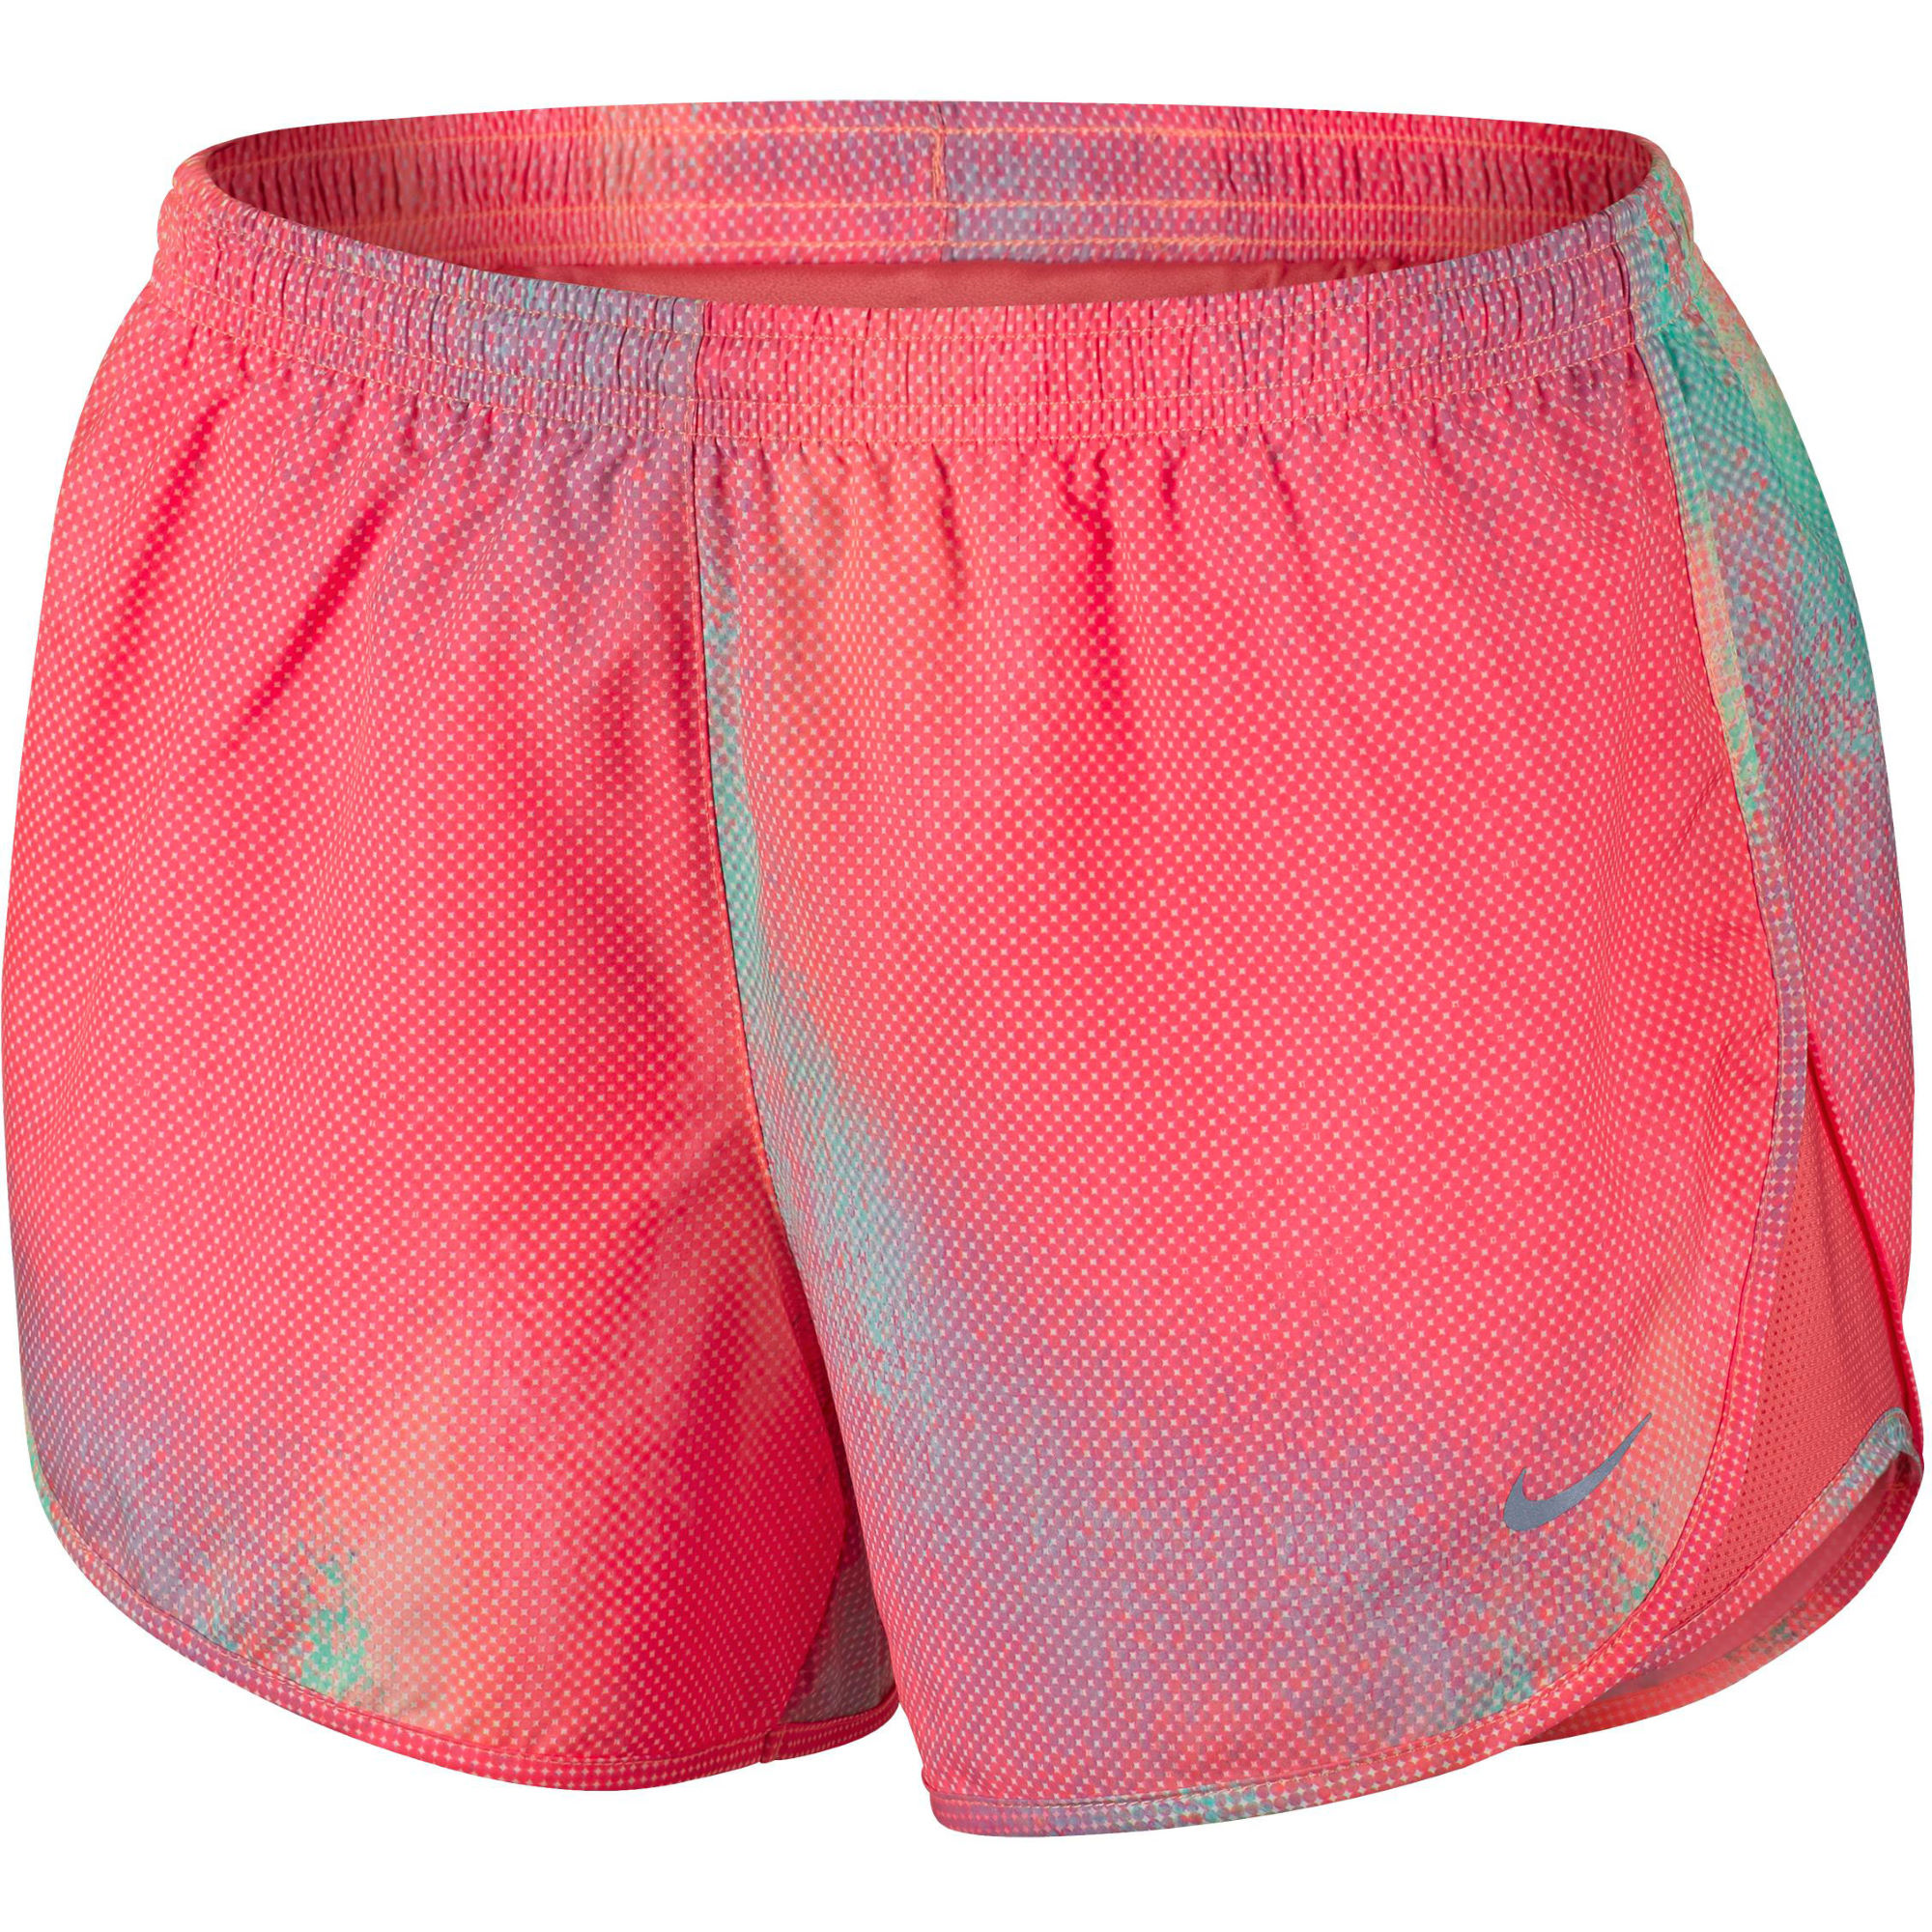 Nike womens running shorts with liner - Nike Women S Printed Modern Tempo Short Su15